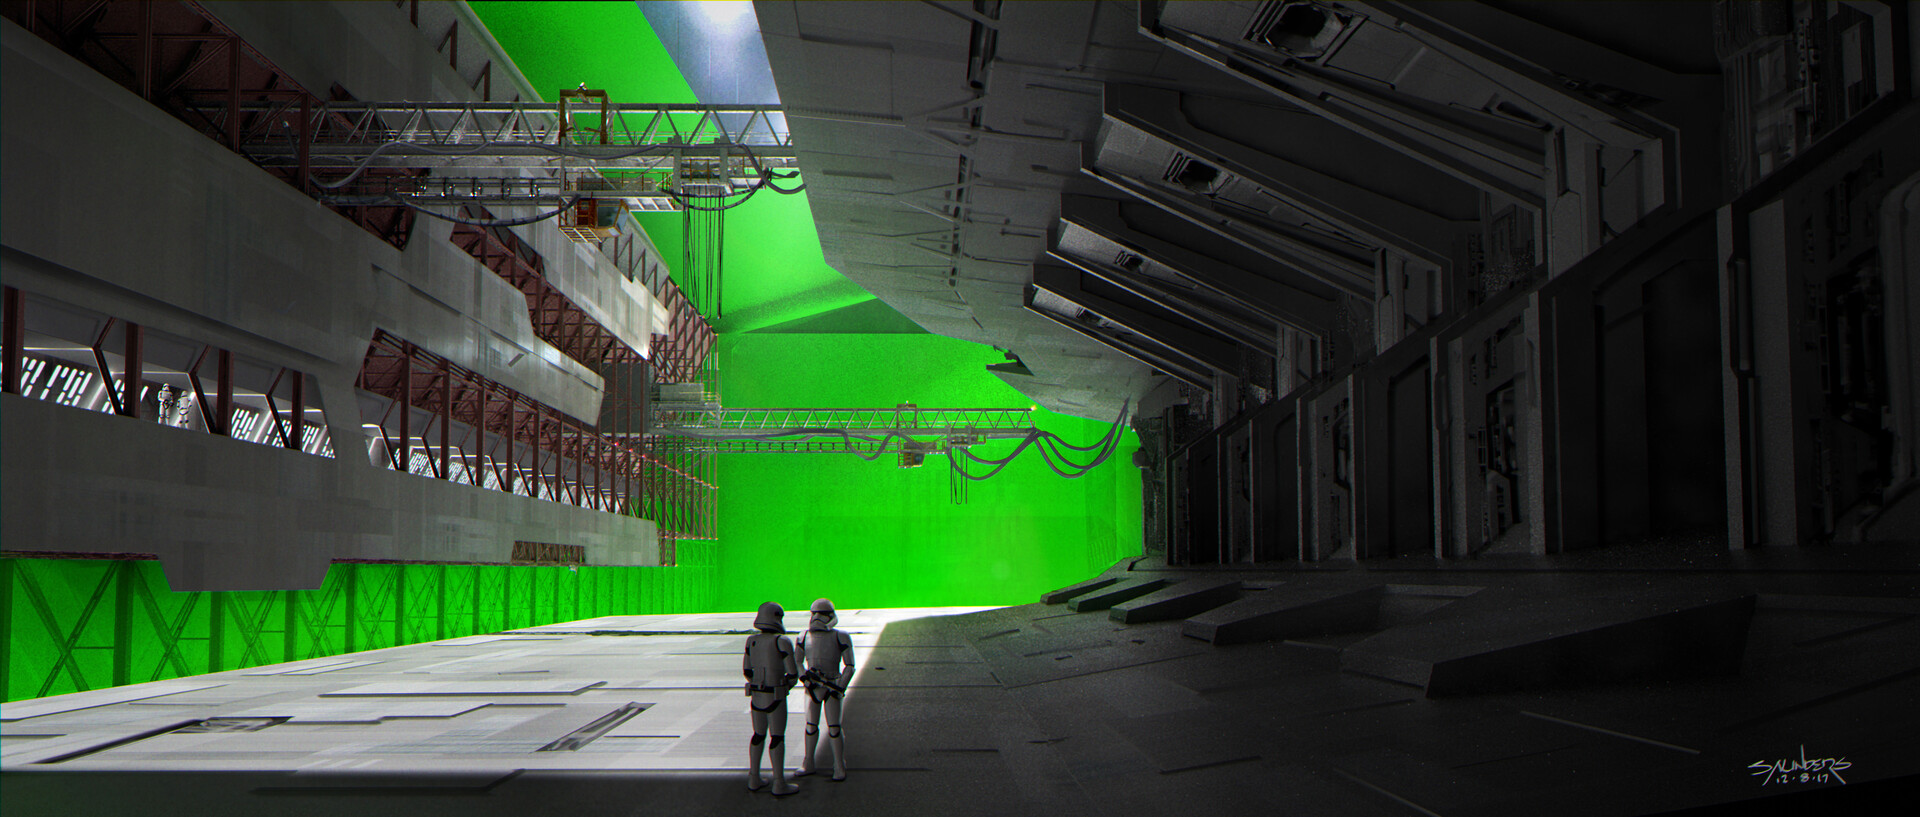 The same shot rendered to simulate the actual set on the green-screened Cardington stage.